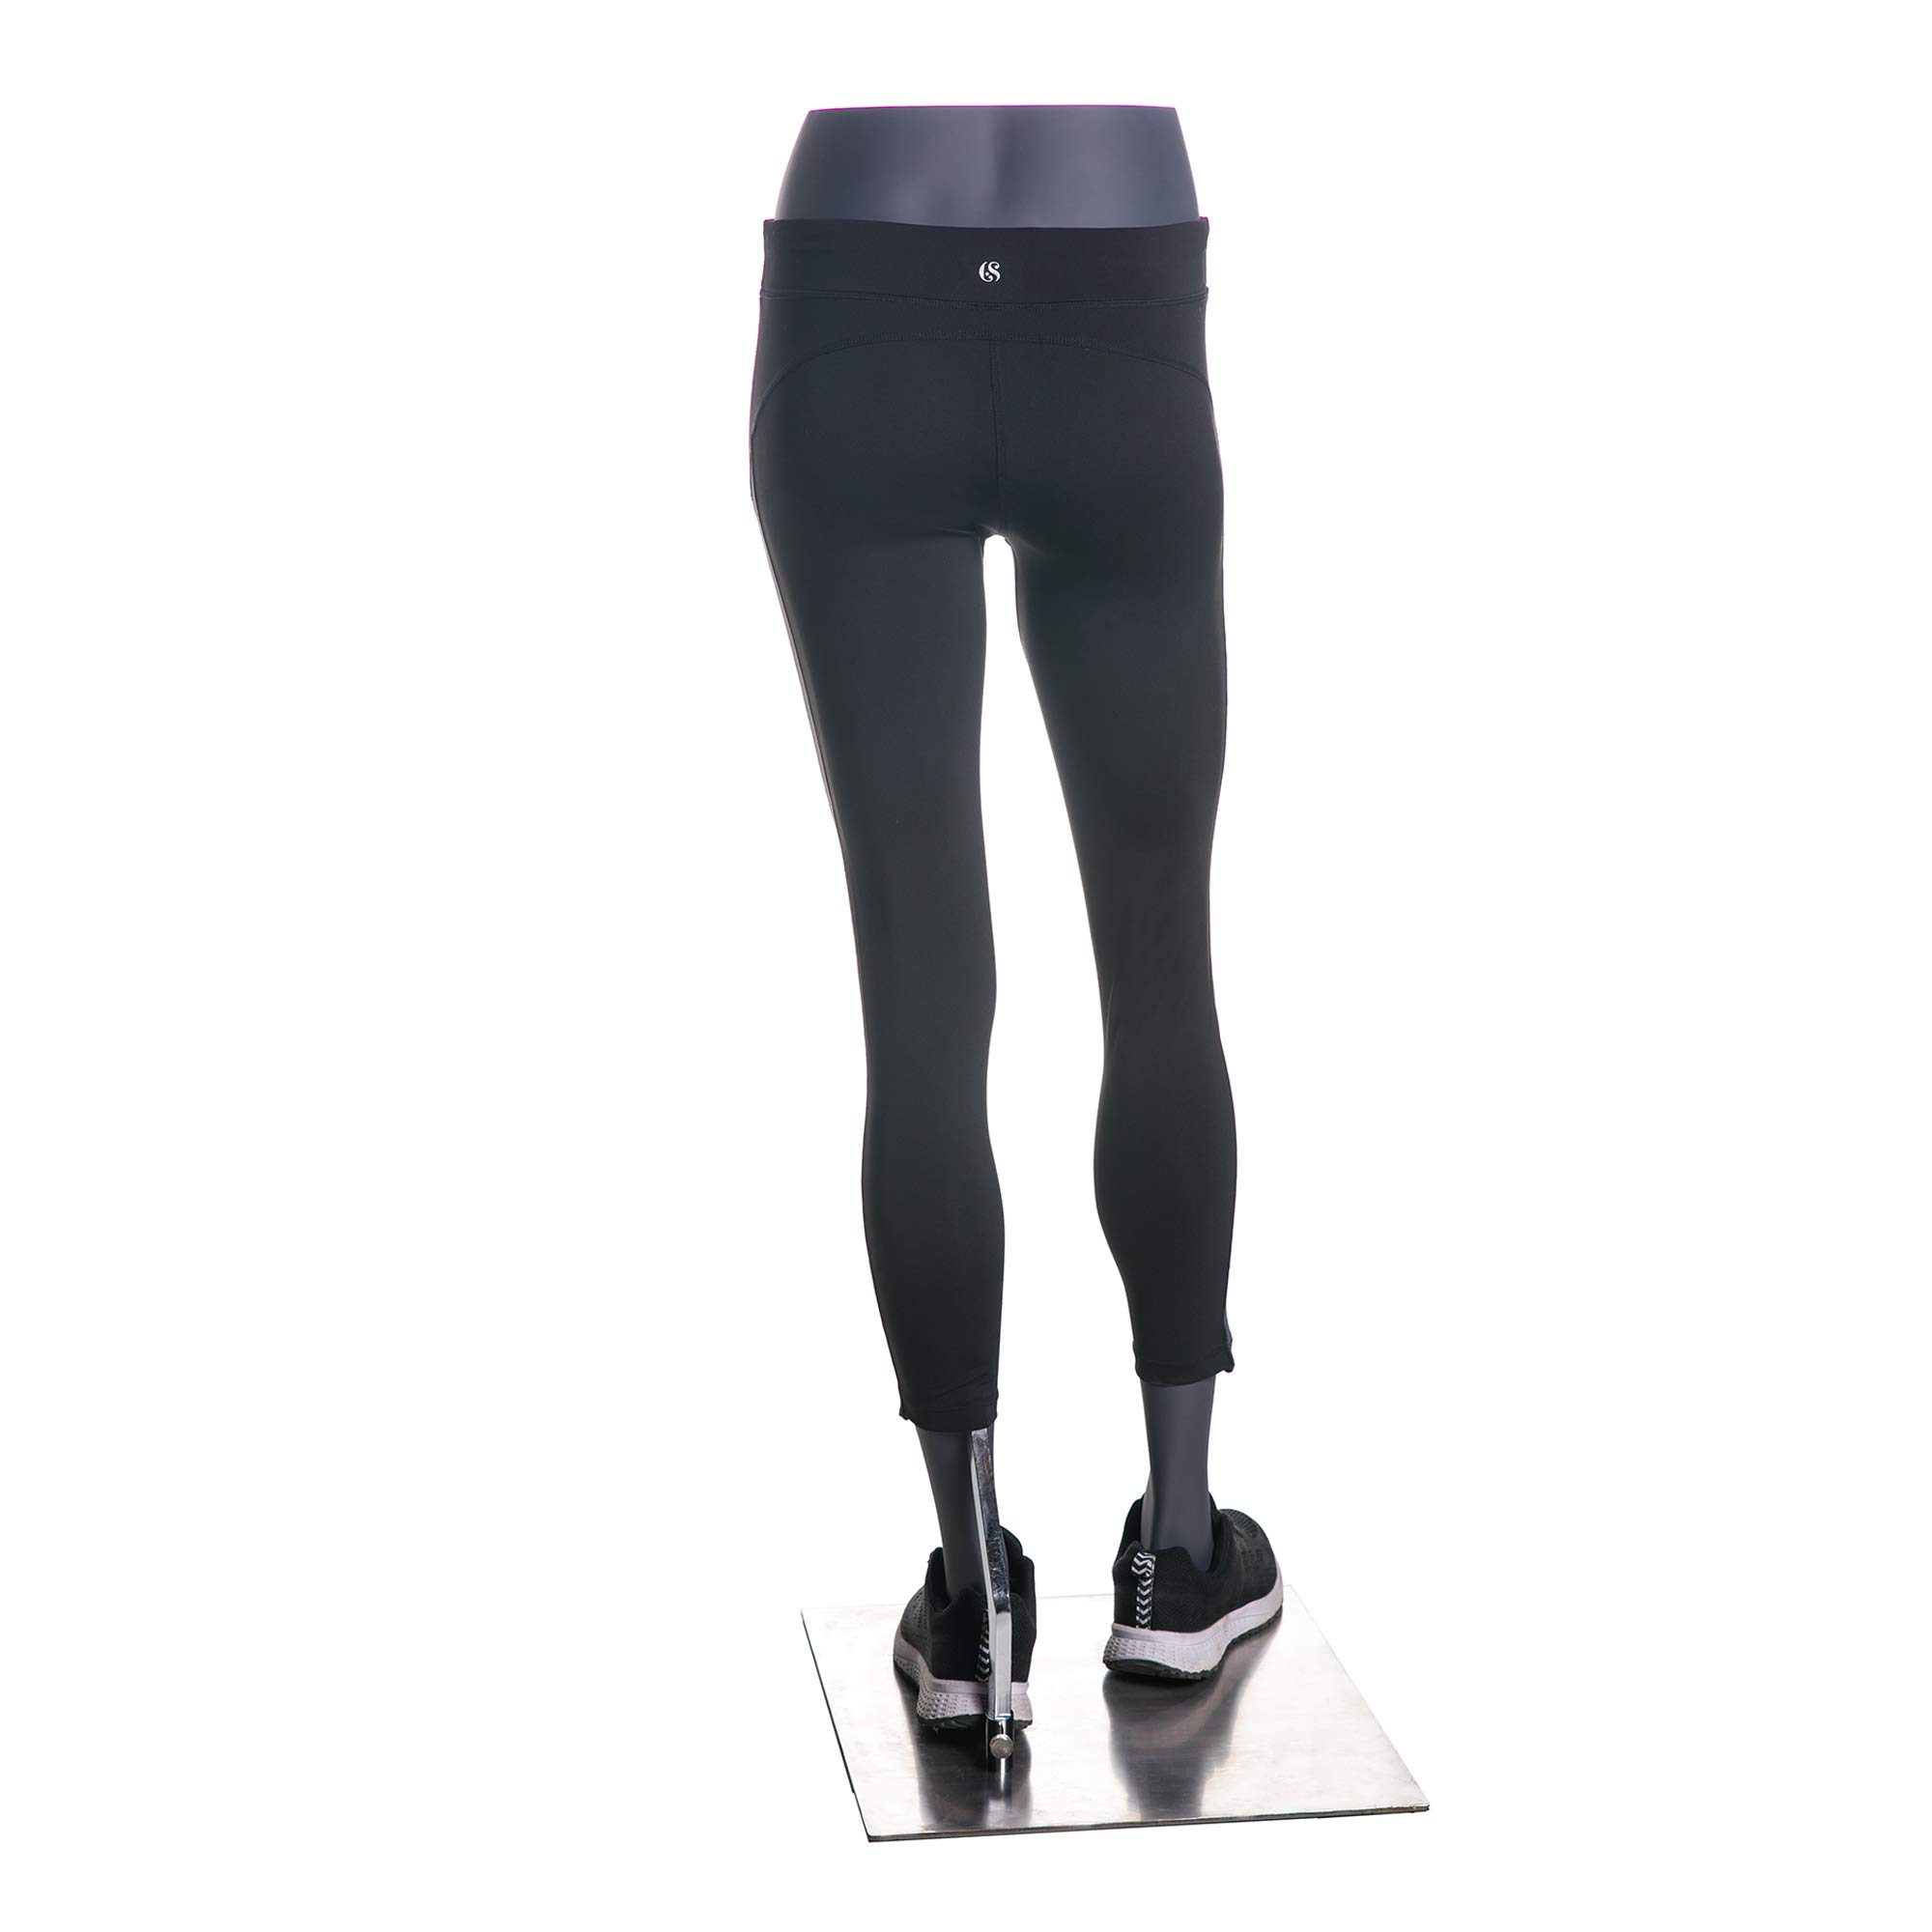 (MZ-HEF22LEG) High end Quality. Eye Catching Female Headless Mannequin Leg, Athletic Style. Standing Pose. by Roxy Display (Image #7)